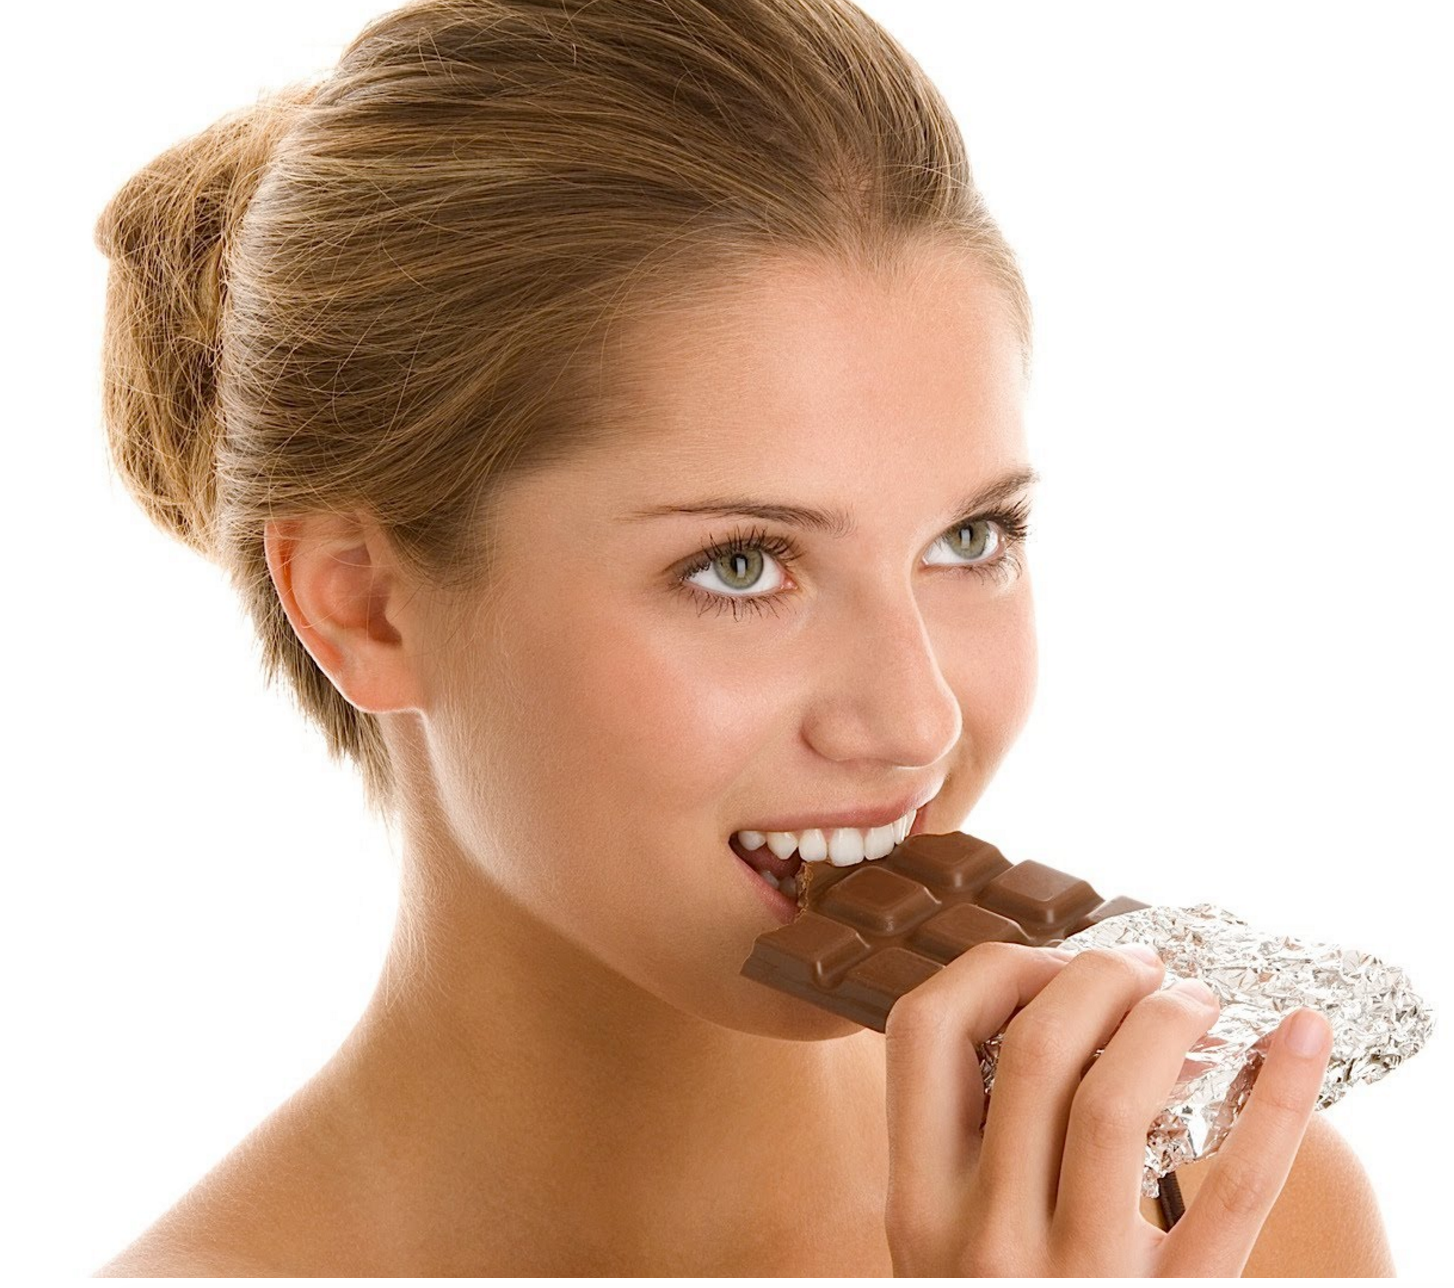 Does Chocolate Cause Acne